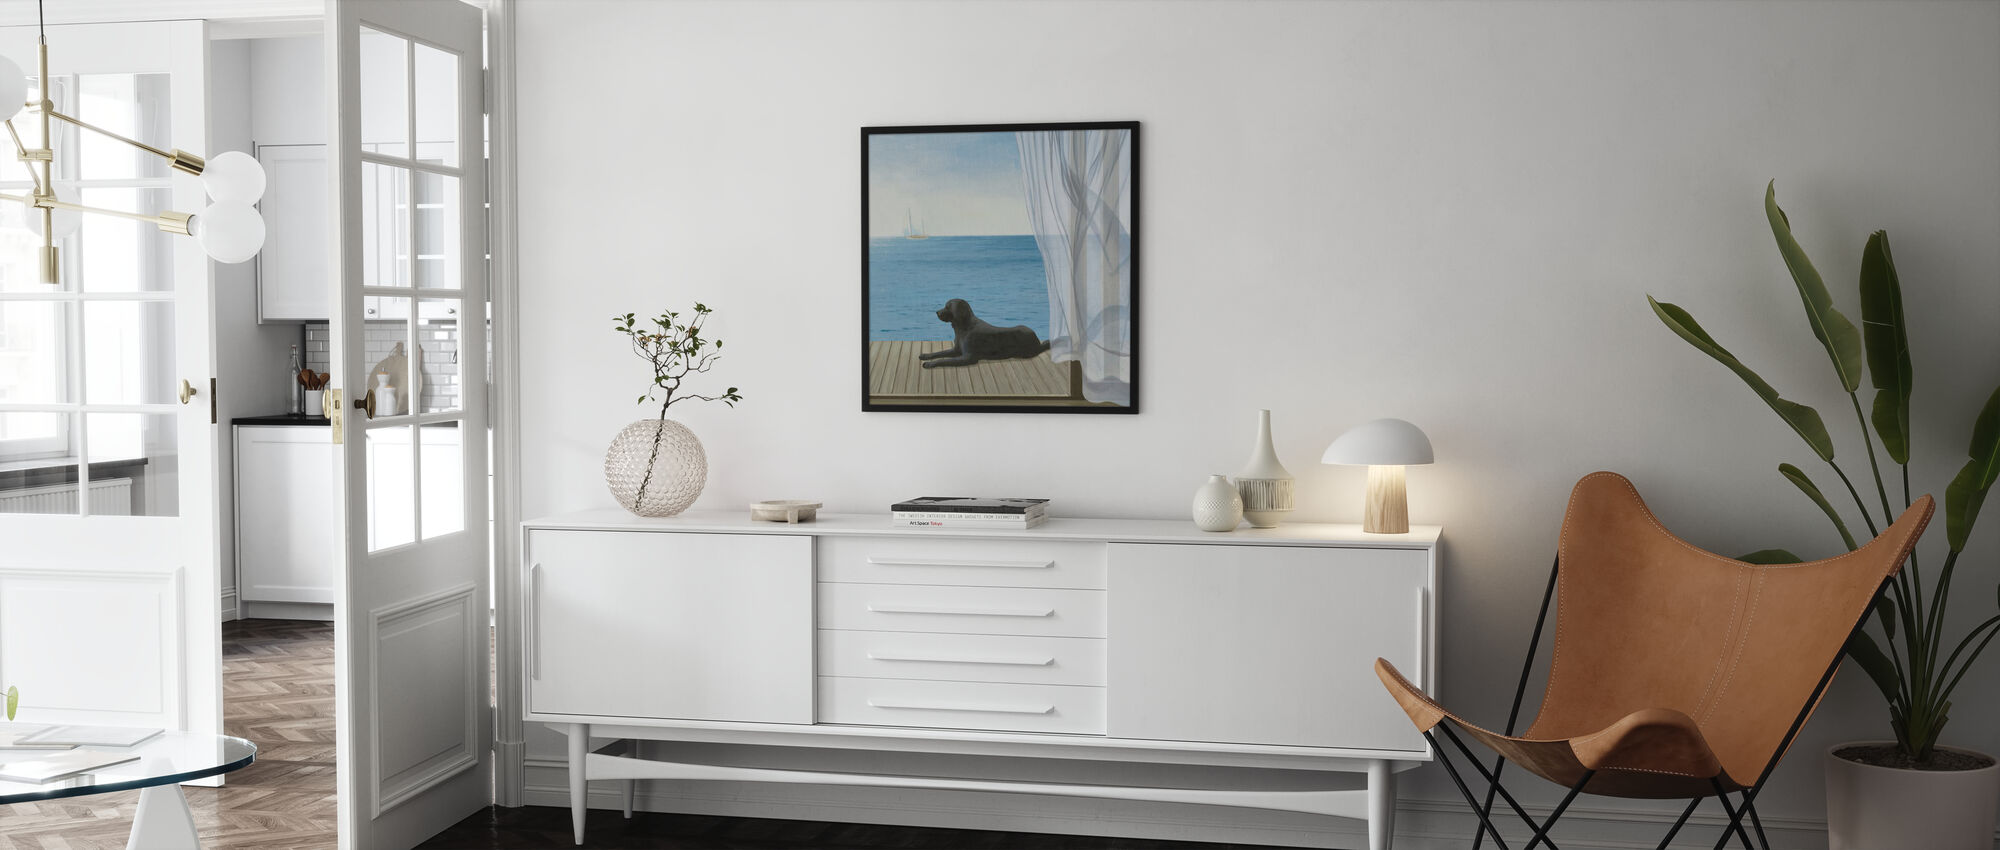 Blue Breeze 2 - Framed print - Living Room